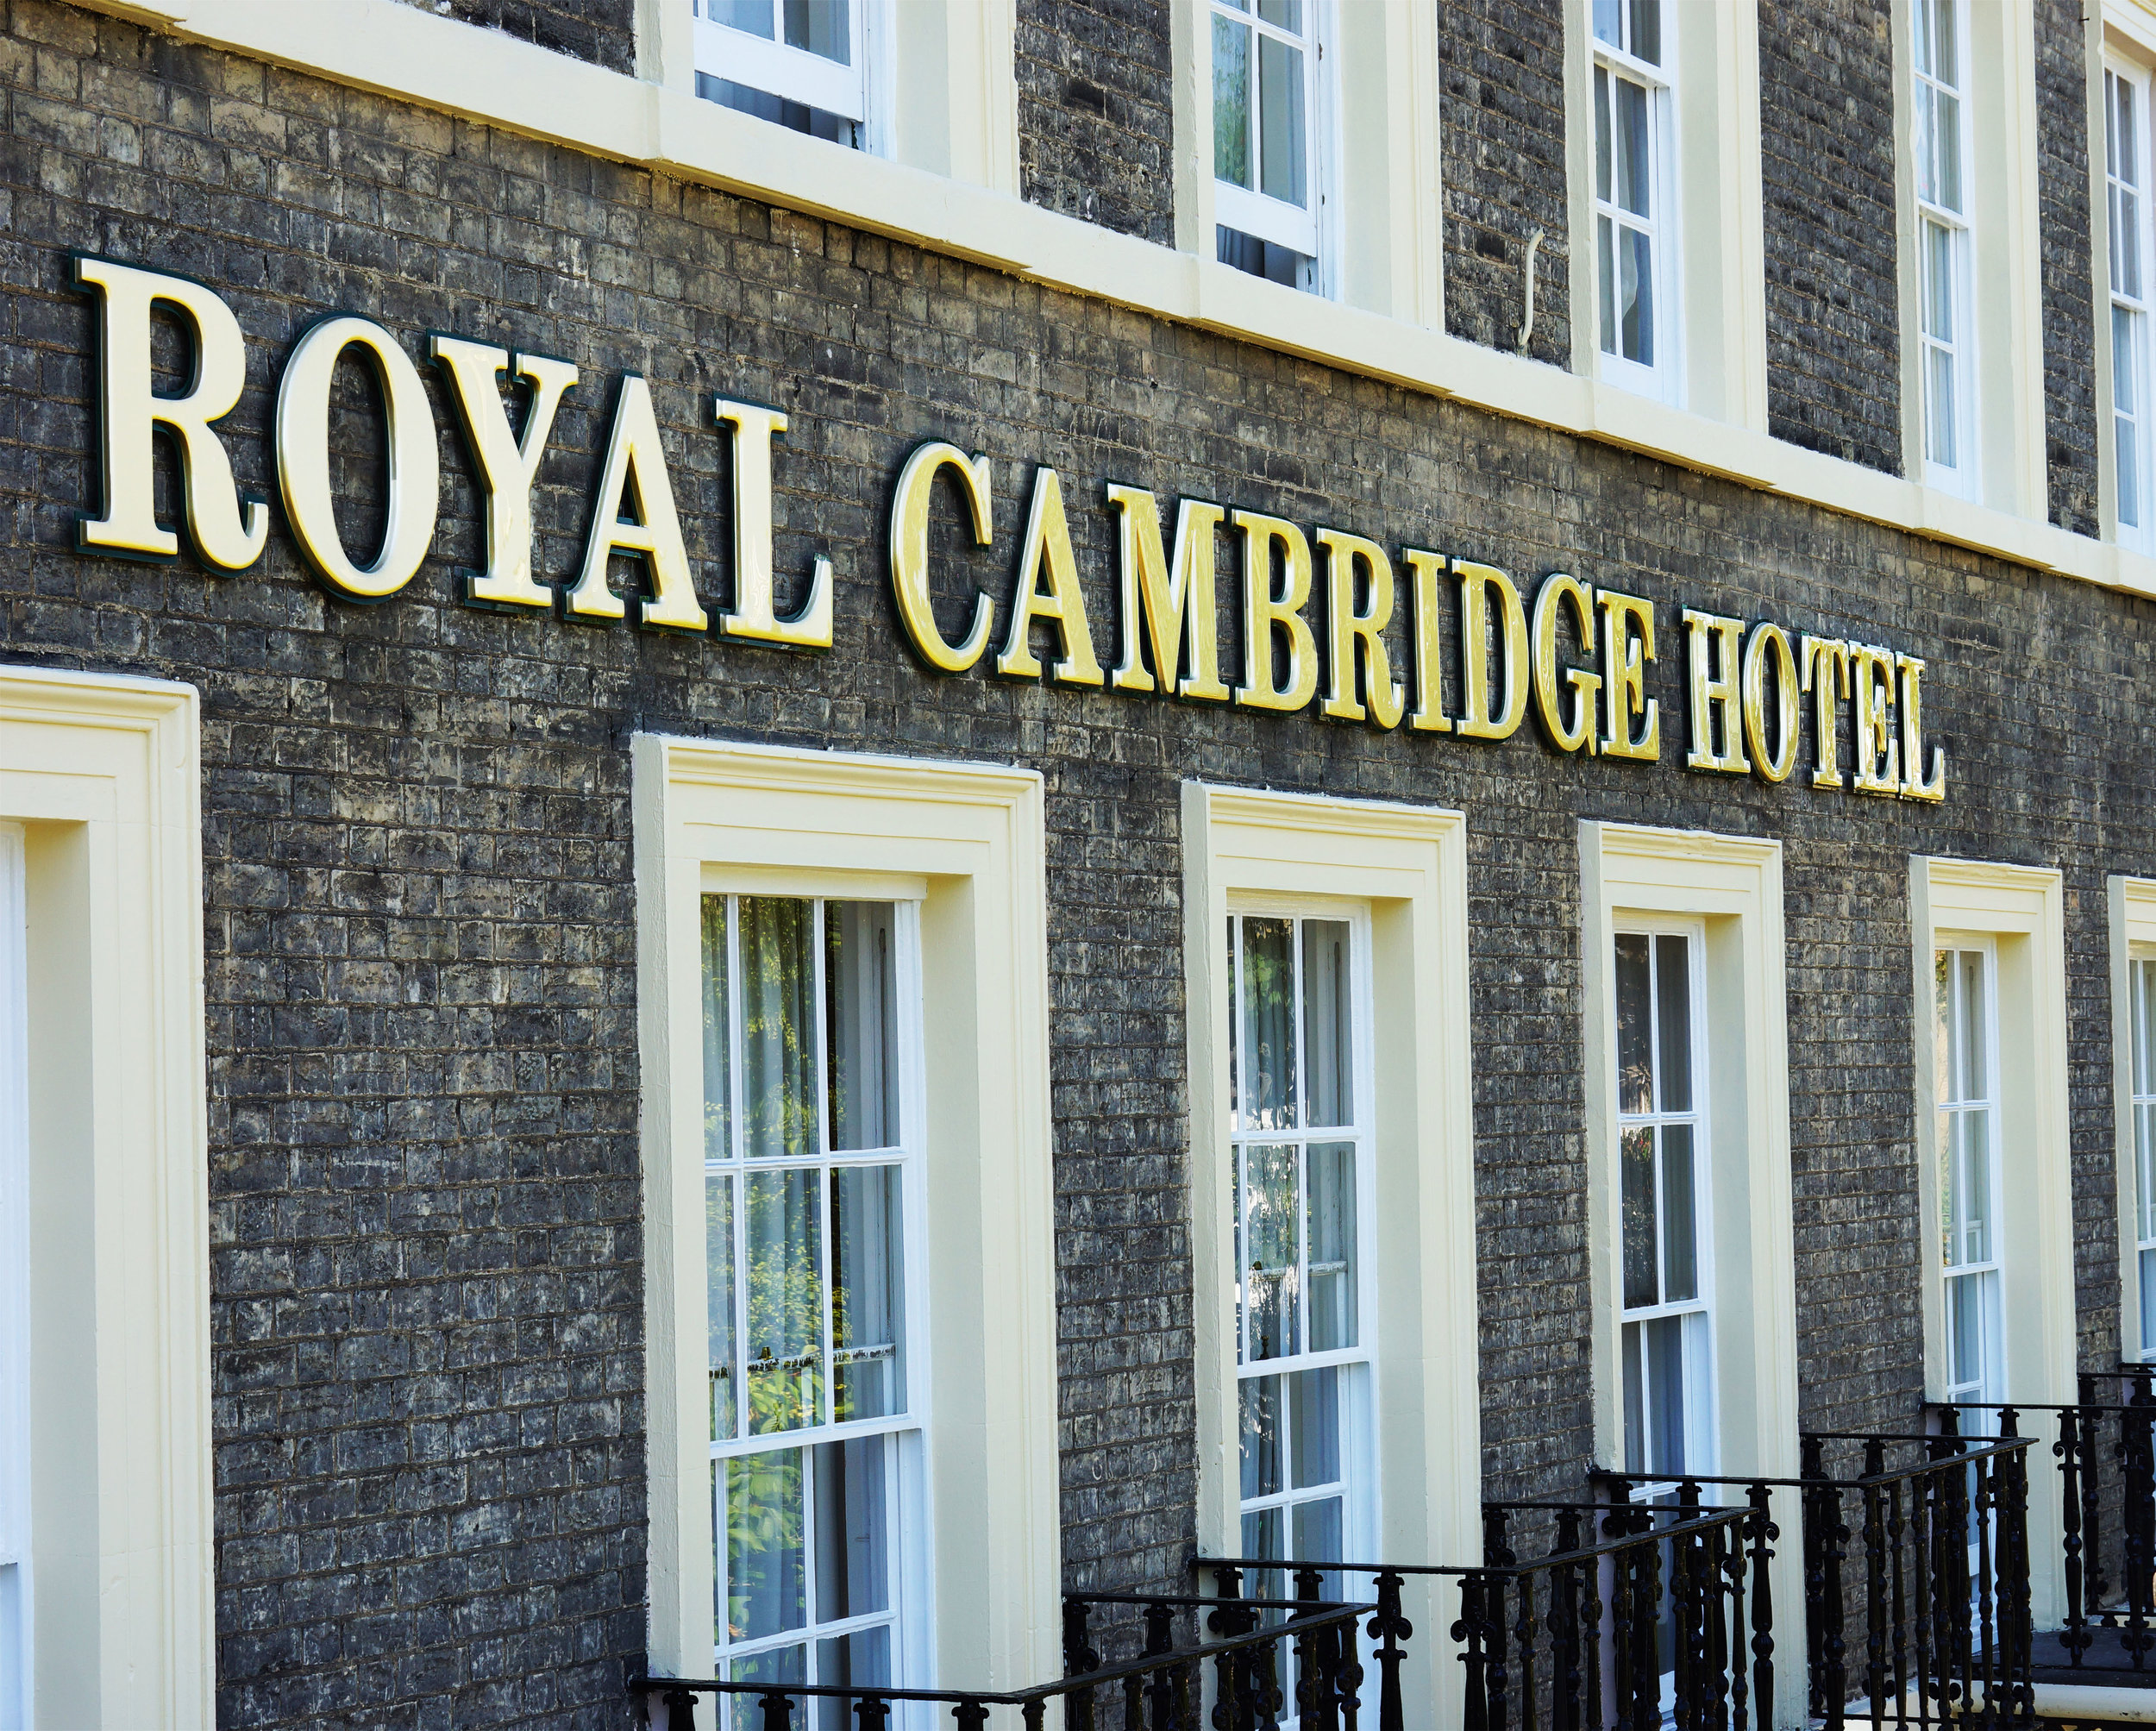 royal cambridge hotel.jpg